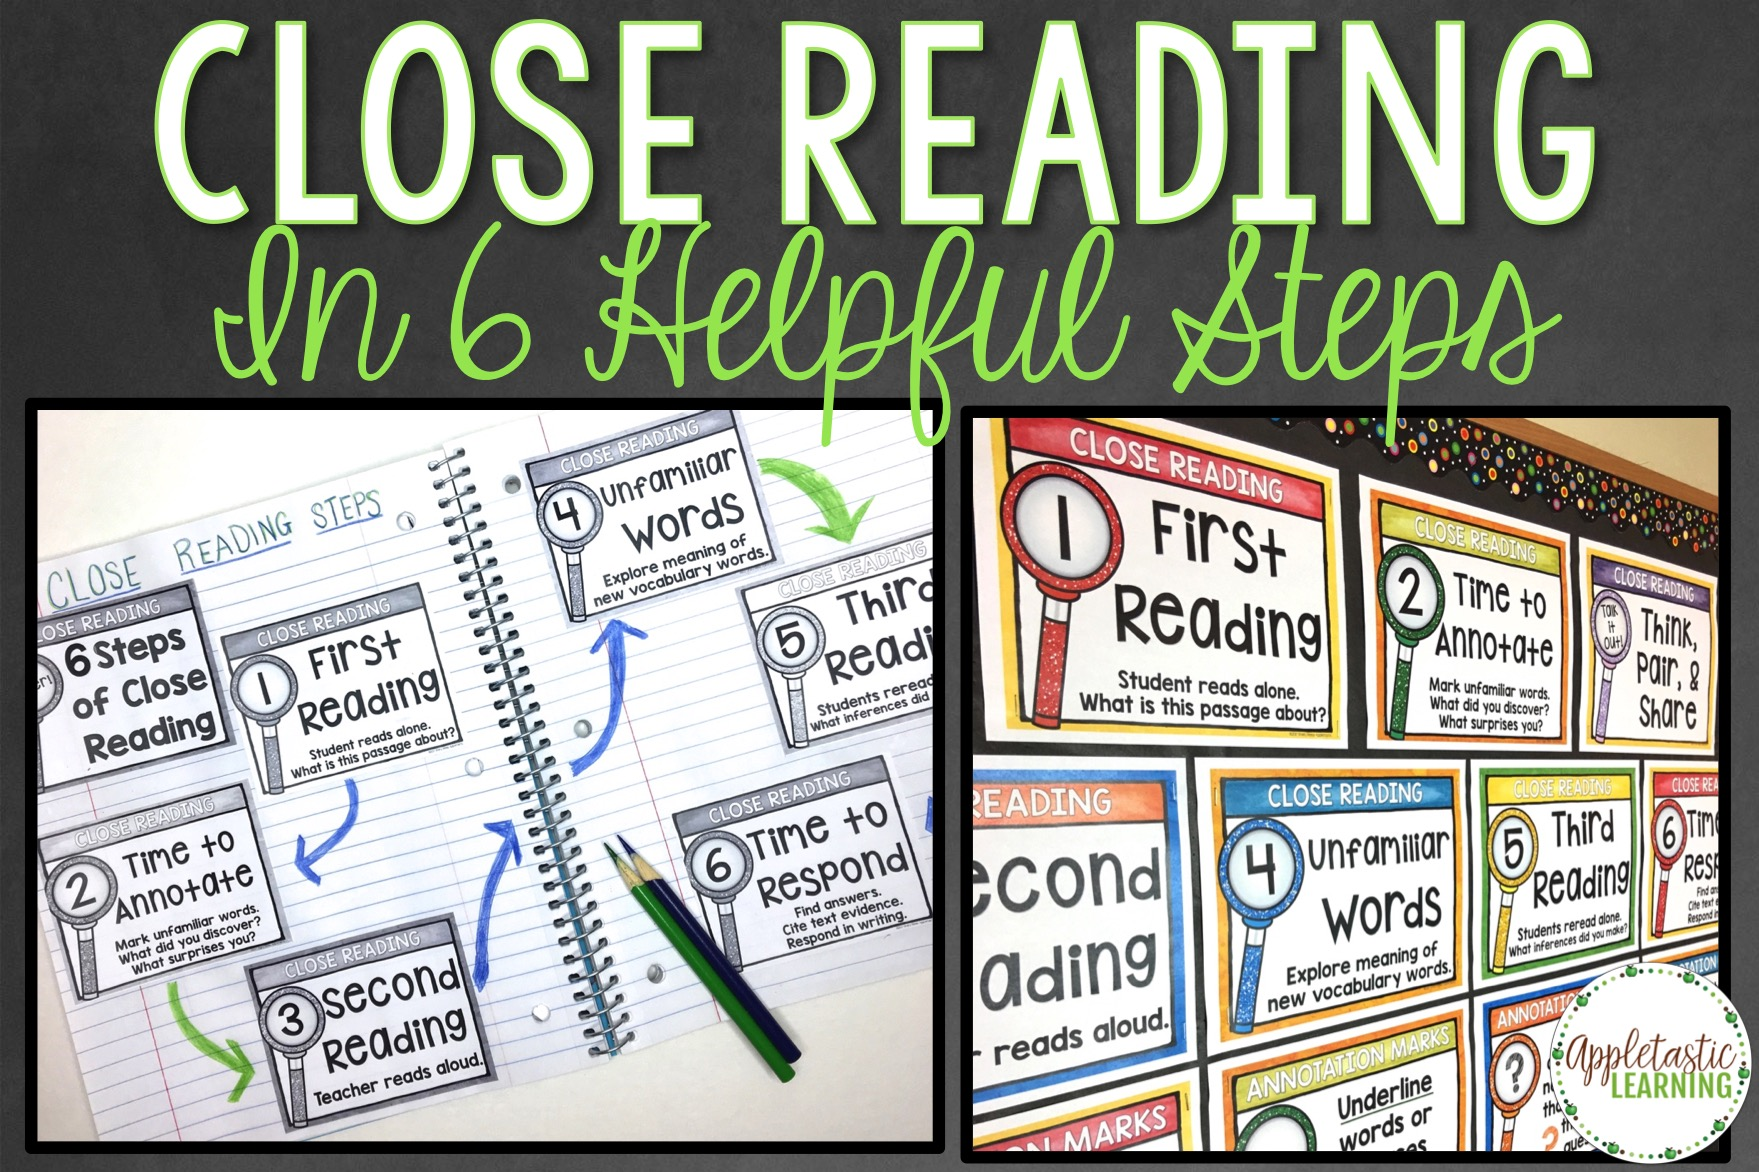 Ready to take Close Reading to the next level in your elementary classroom or homeschool? Then you're going to love these six Close Reading steps! Click through to see what they are and how you can use them with your students for fiction or non-fiction (informational) texts. Your 2nd, 3rd, 4th, 5th, 6th, 7th, and 8th grade students will all benefit from the activities, lessons, and ideas presented here. Click through to get ideas, resources, and more that you can use for a variety of purposes.